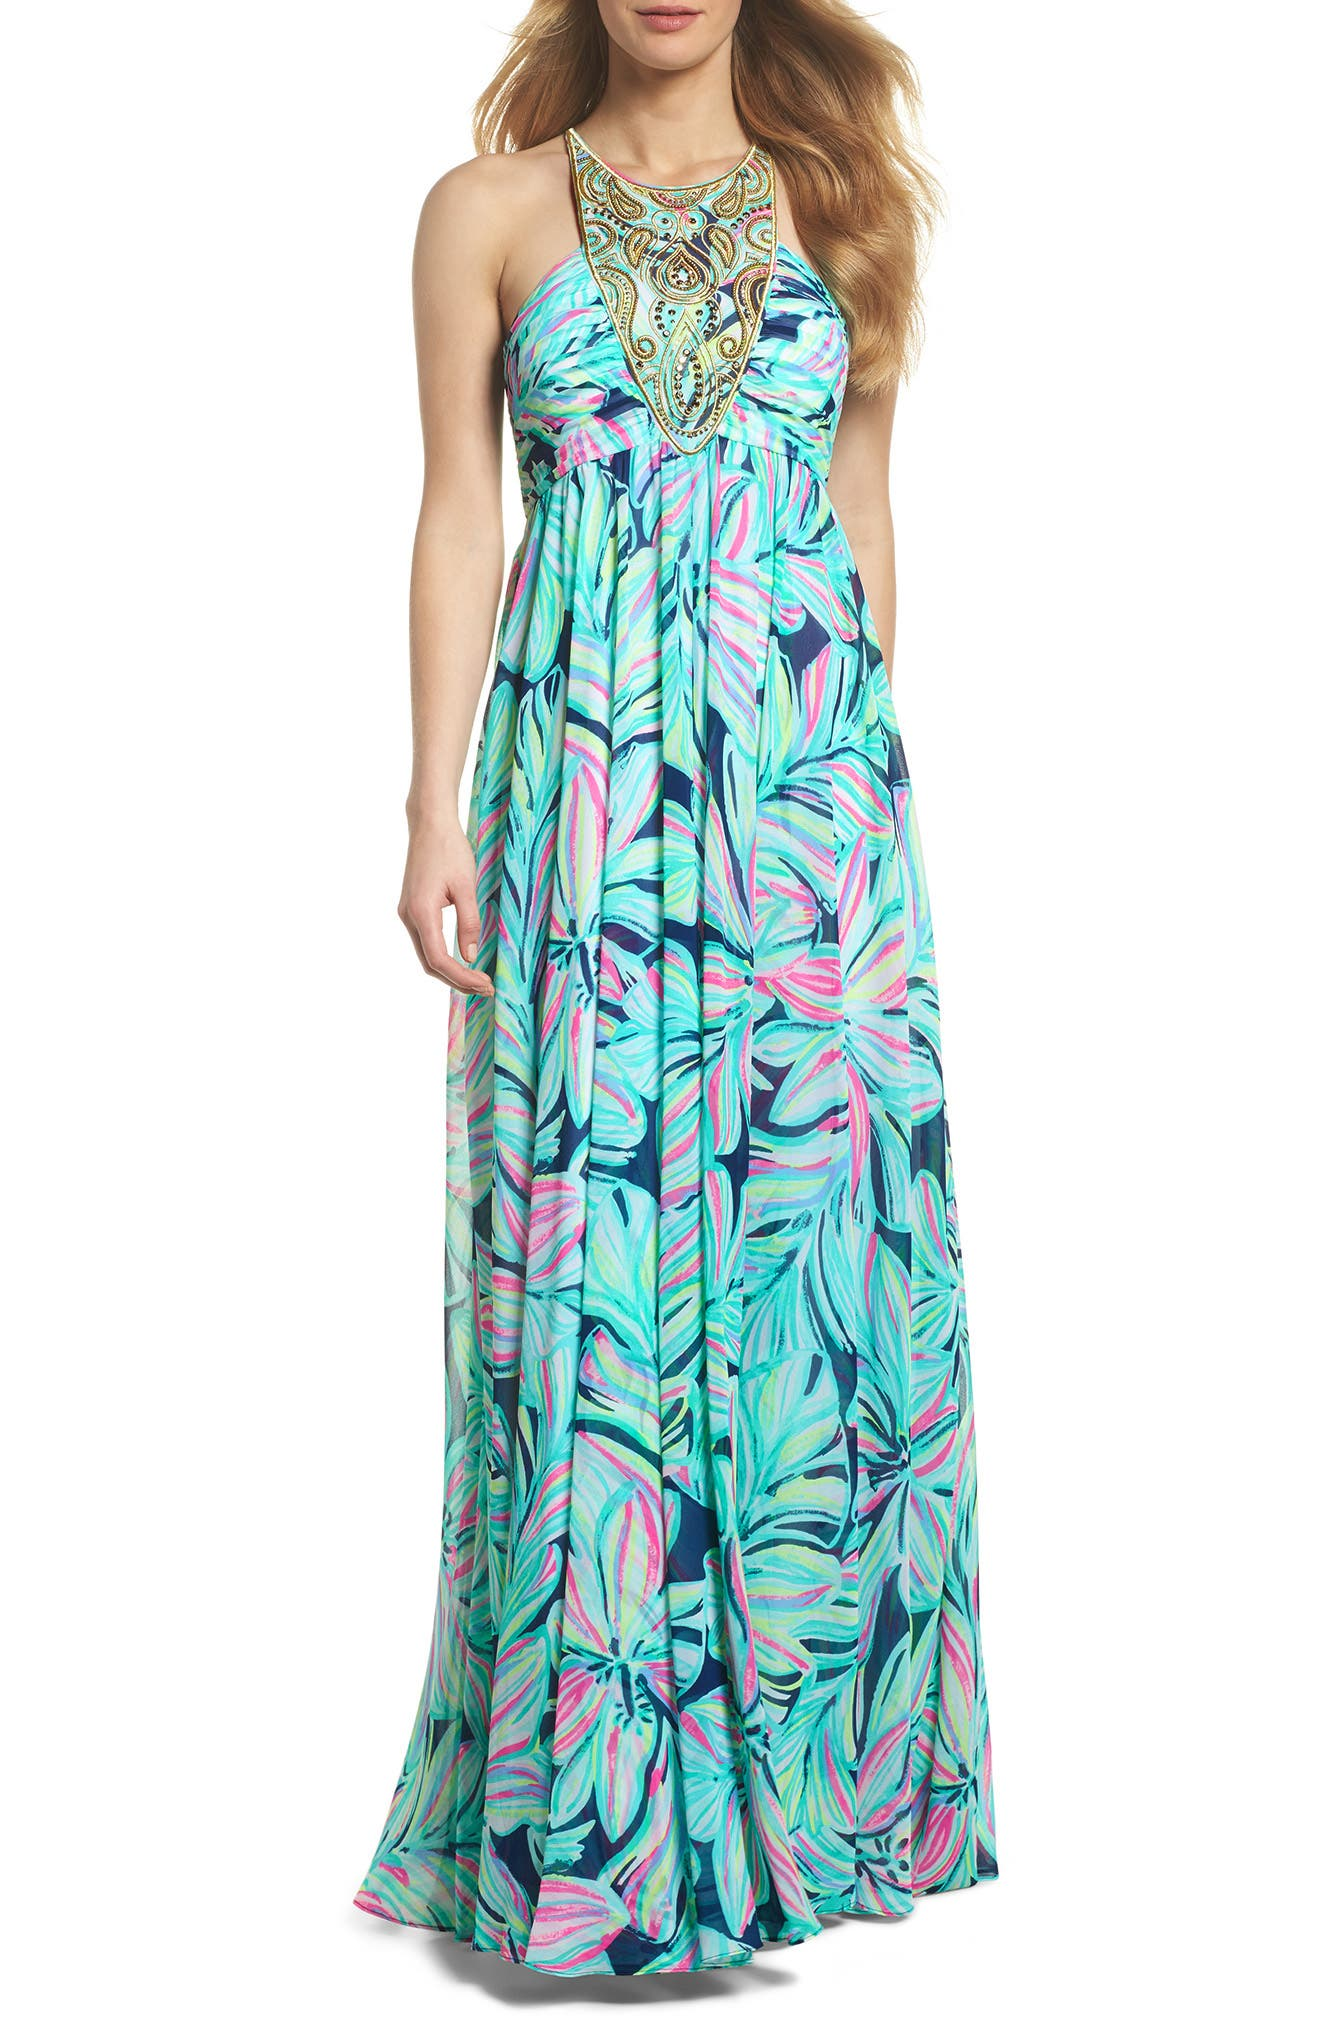 Lannette Embellished Chiffon Maxi Dress,                             Main thumbnail 1, color,                             400